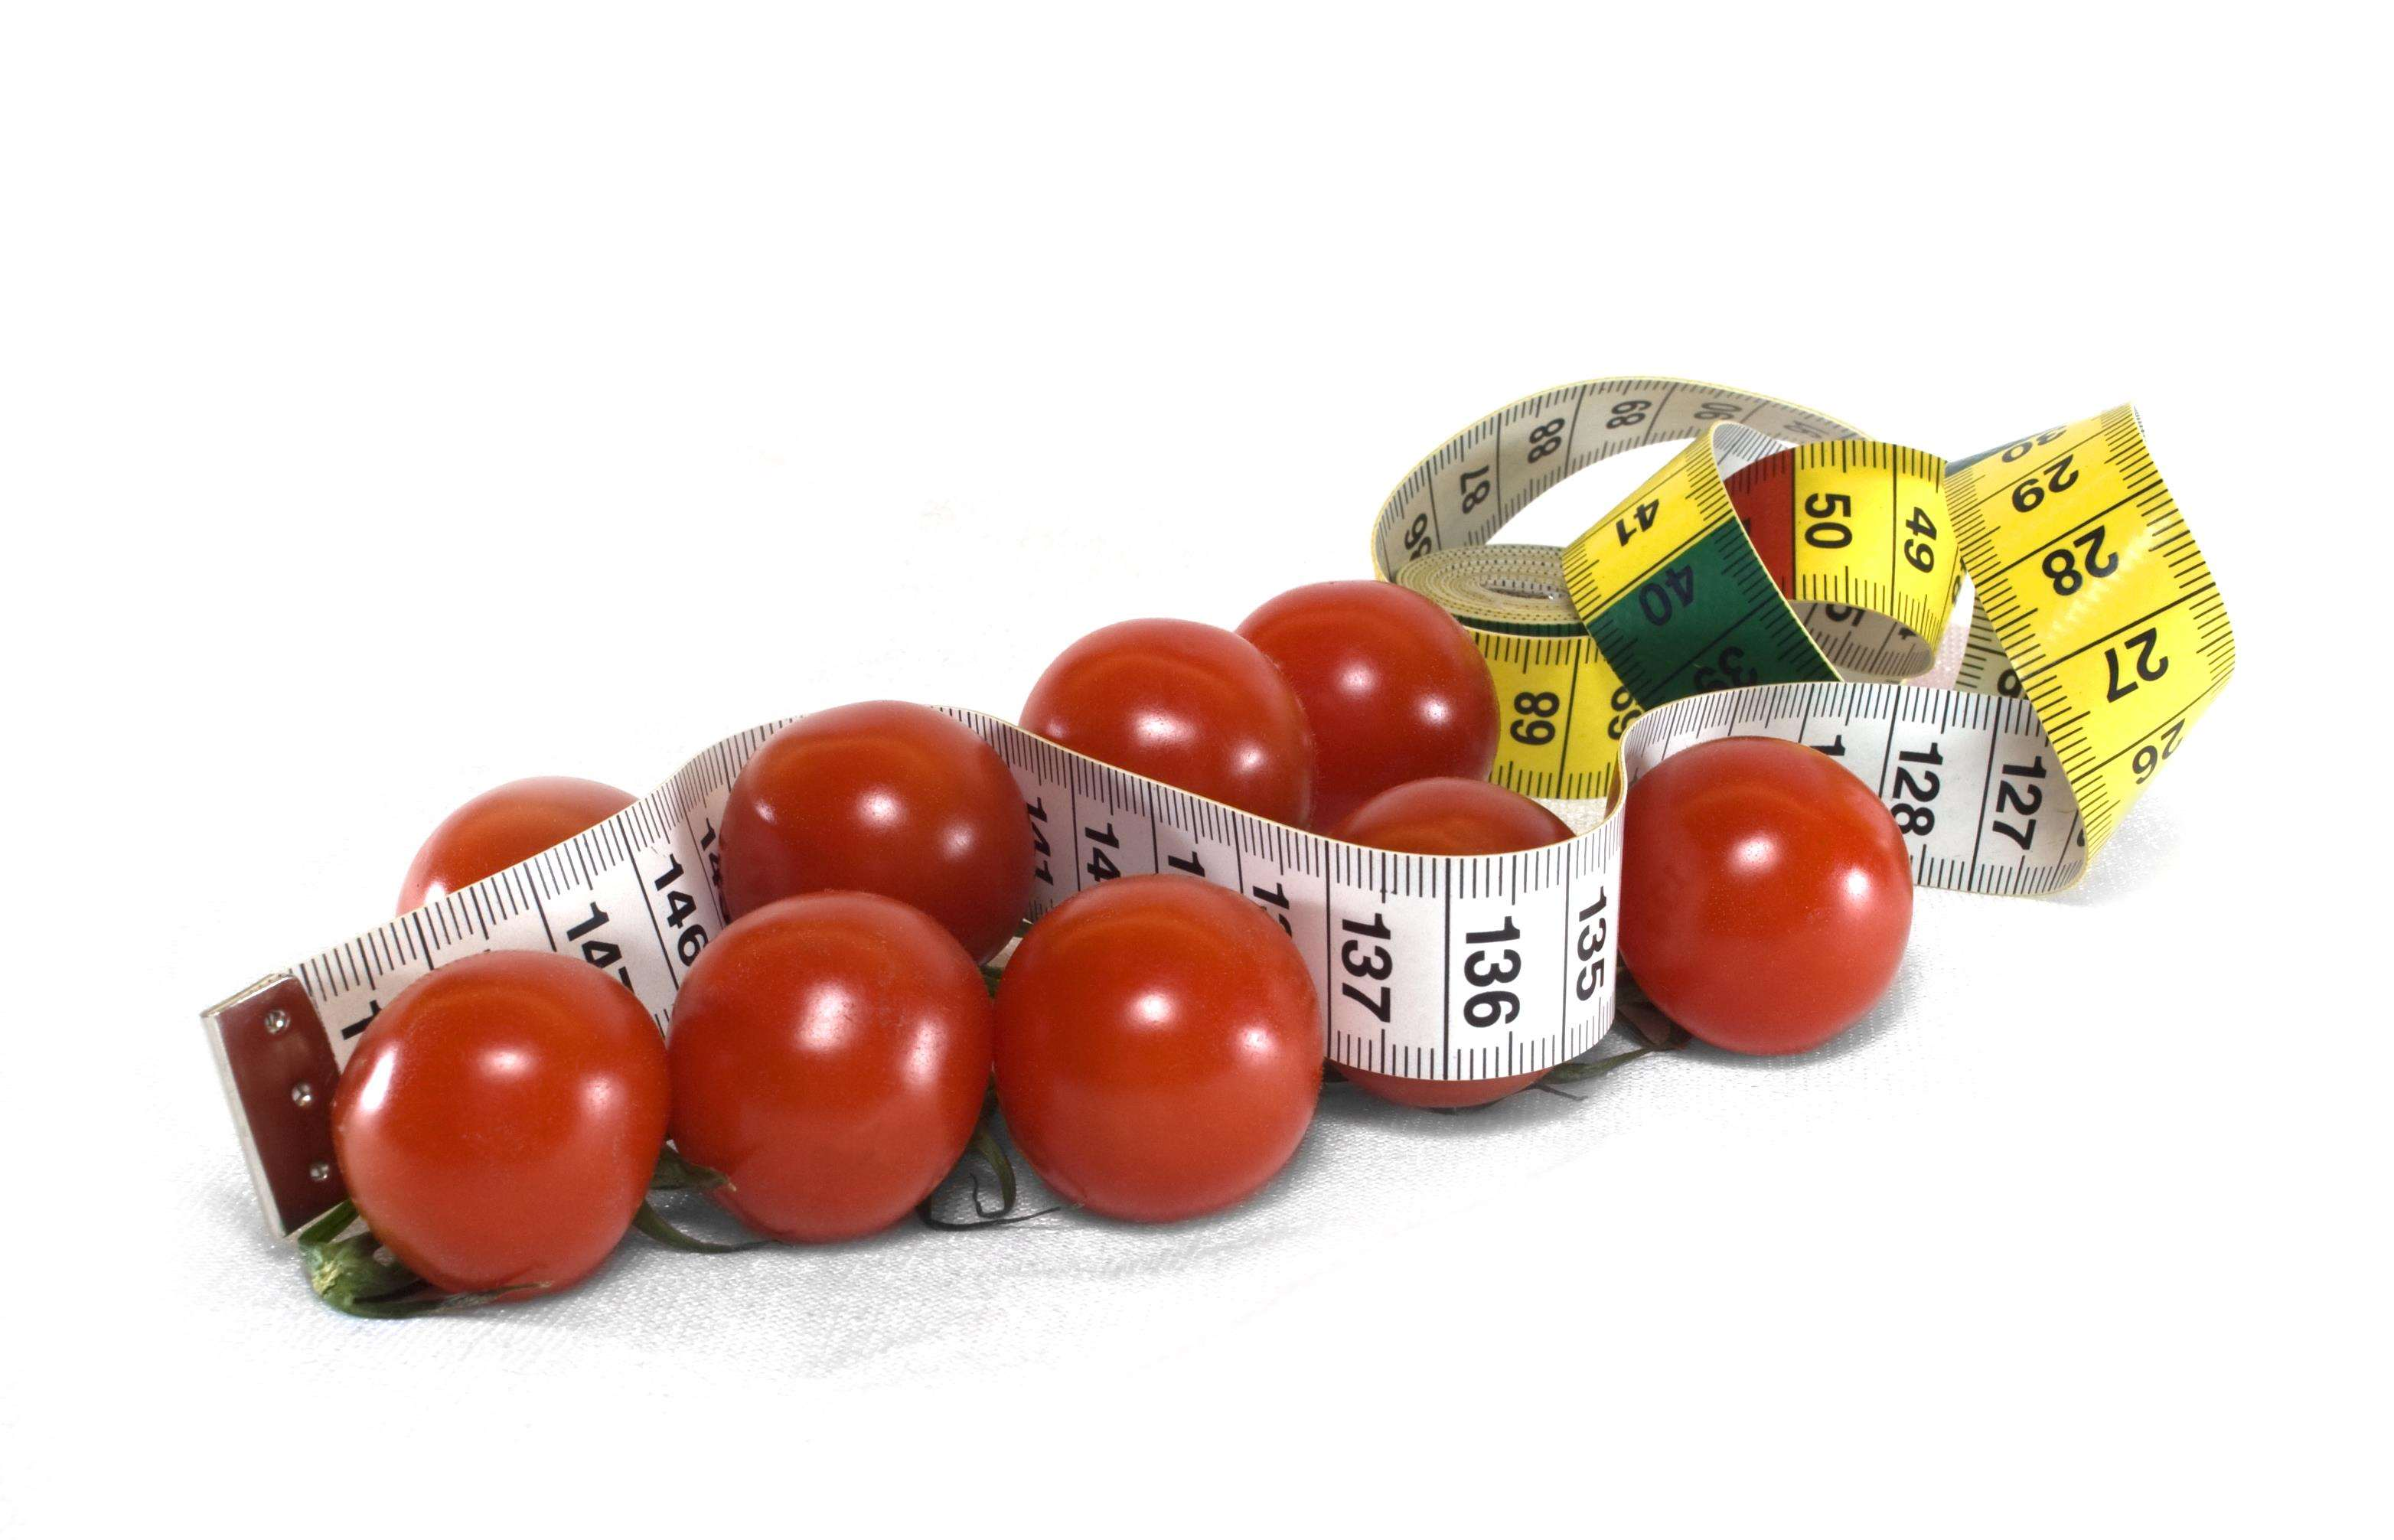 How to lose weight: 10 tips to help control your portion sizes, Tomato measureing tape%, uncategorised%